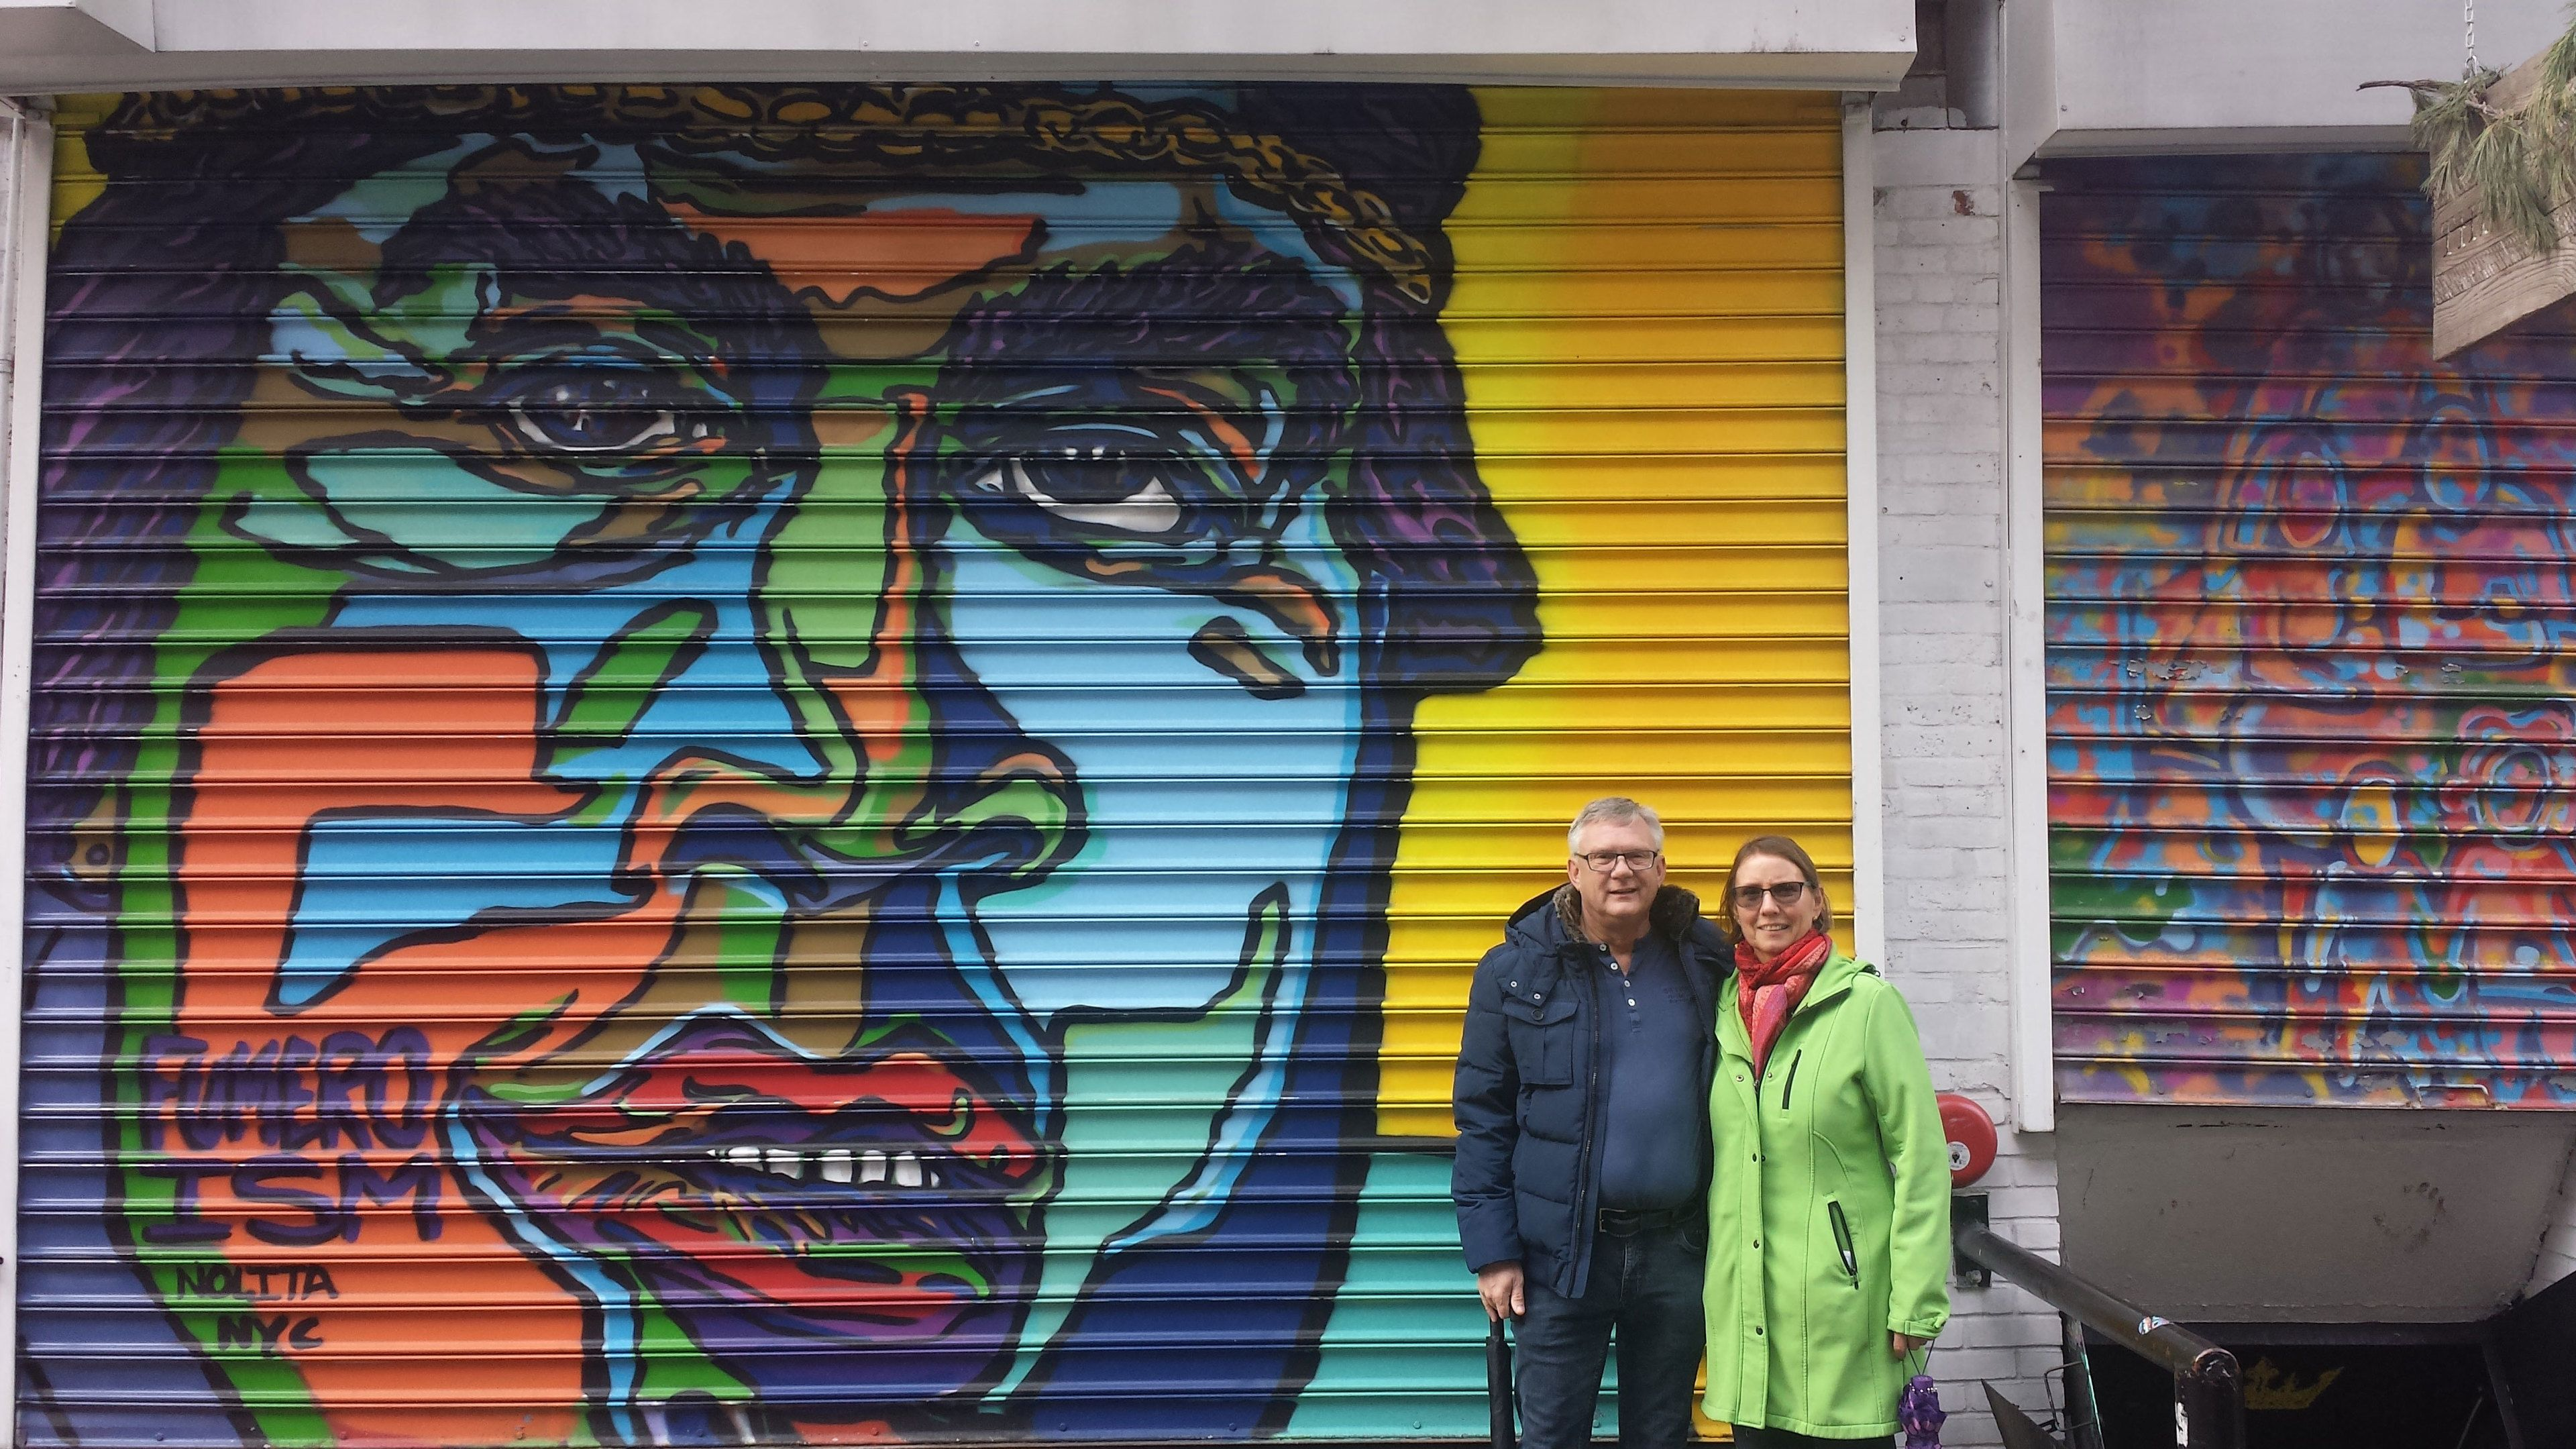 Two people stand next to Graffiti